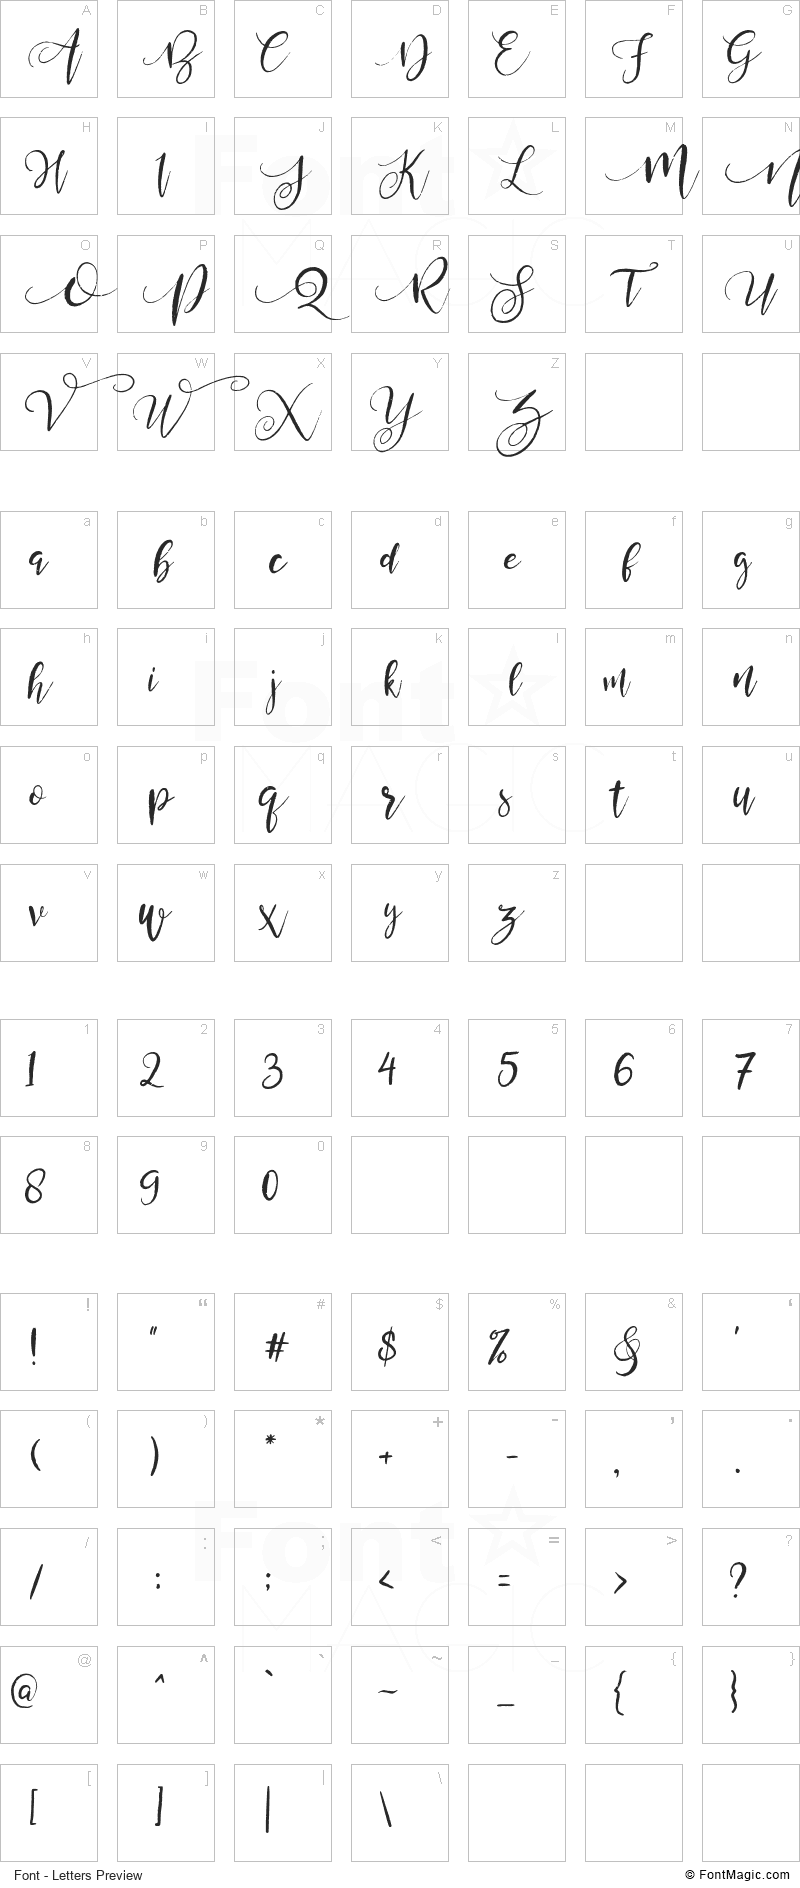 Valledofas Font - All Latters Preview Chart